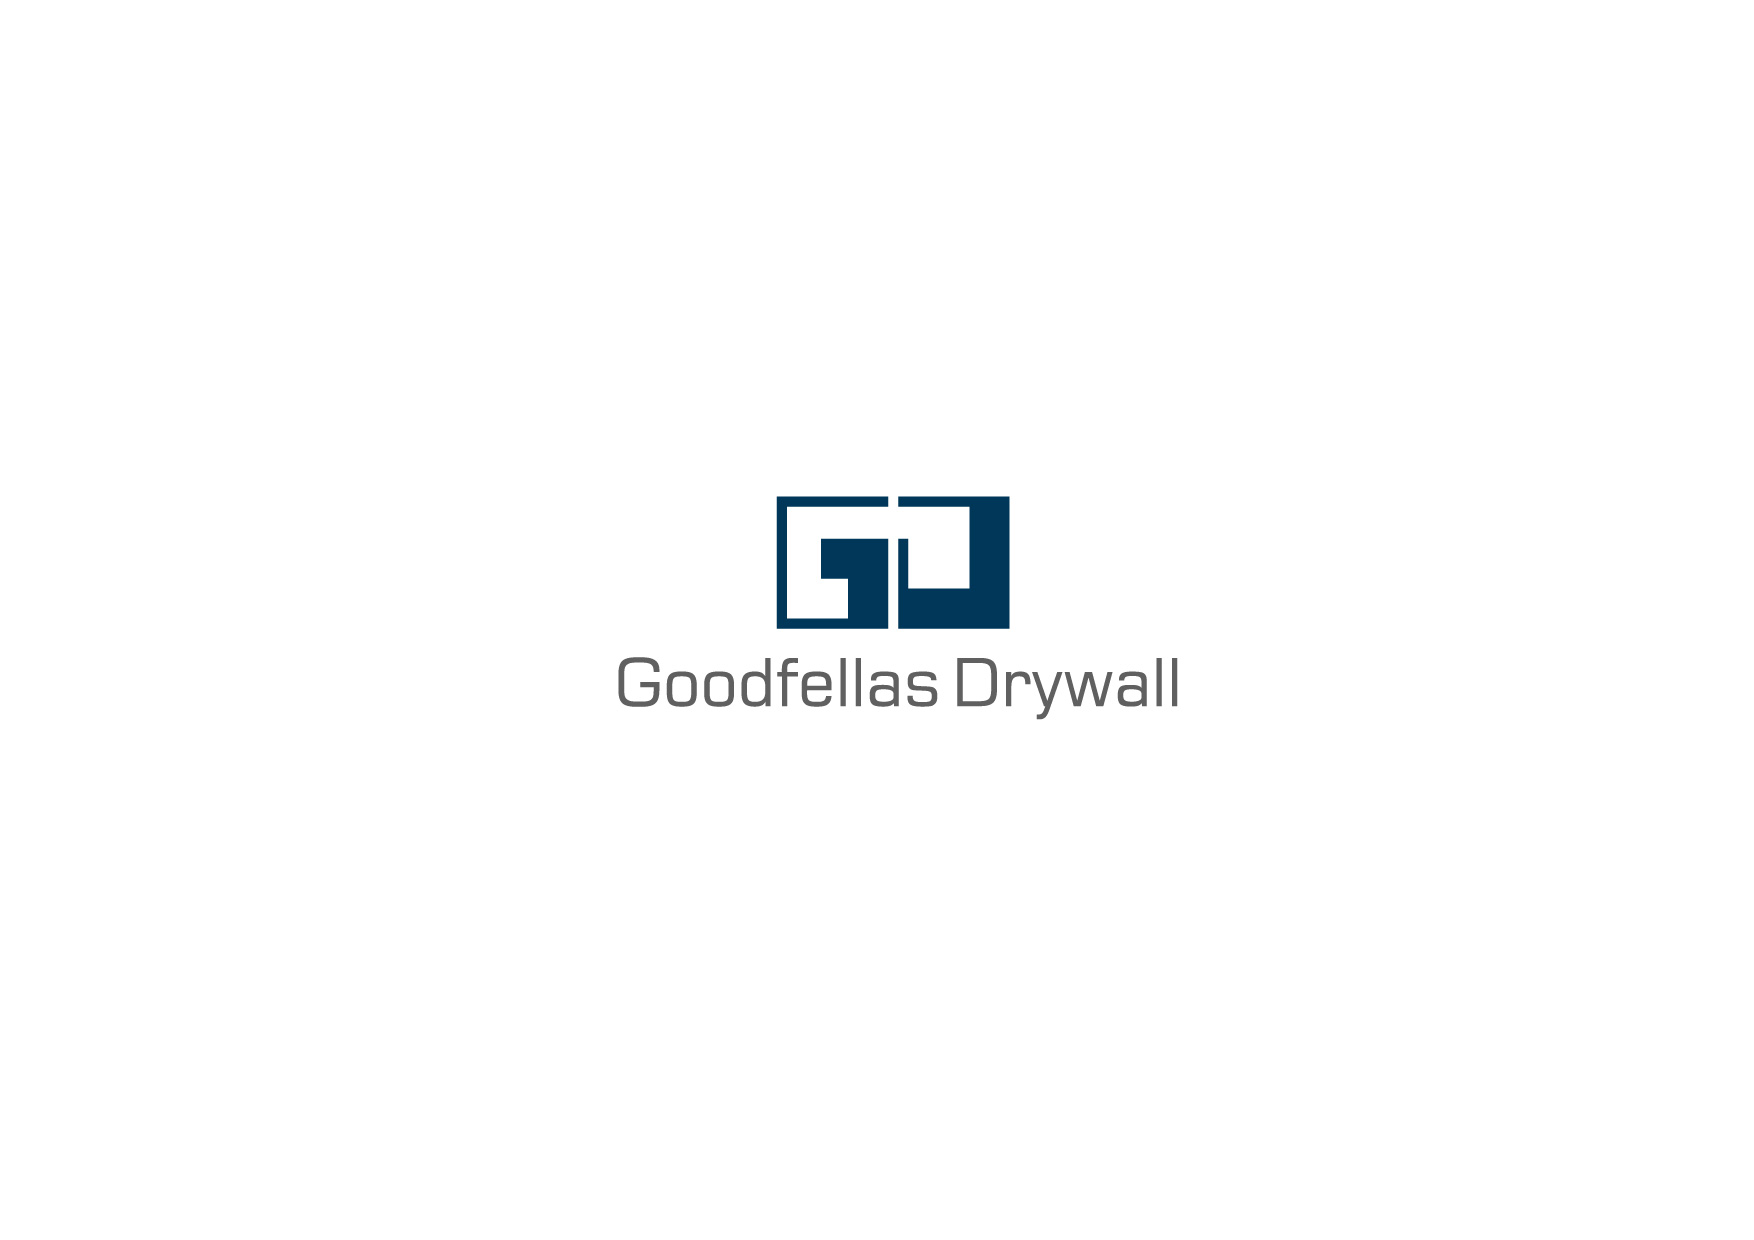 Logo Design by Osi Indra - Entry No. 29 in the Logo Design Contest Creative Logo Design for Goodfellas Drywall.